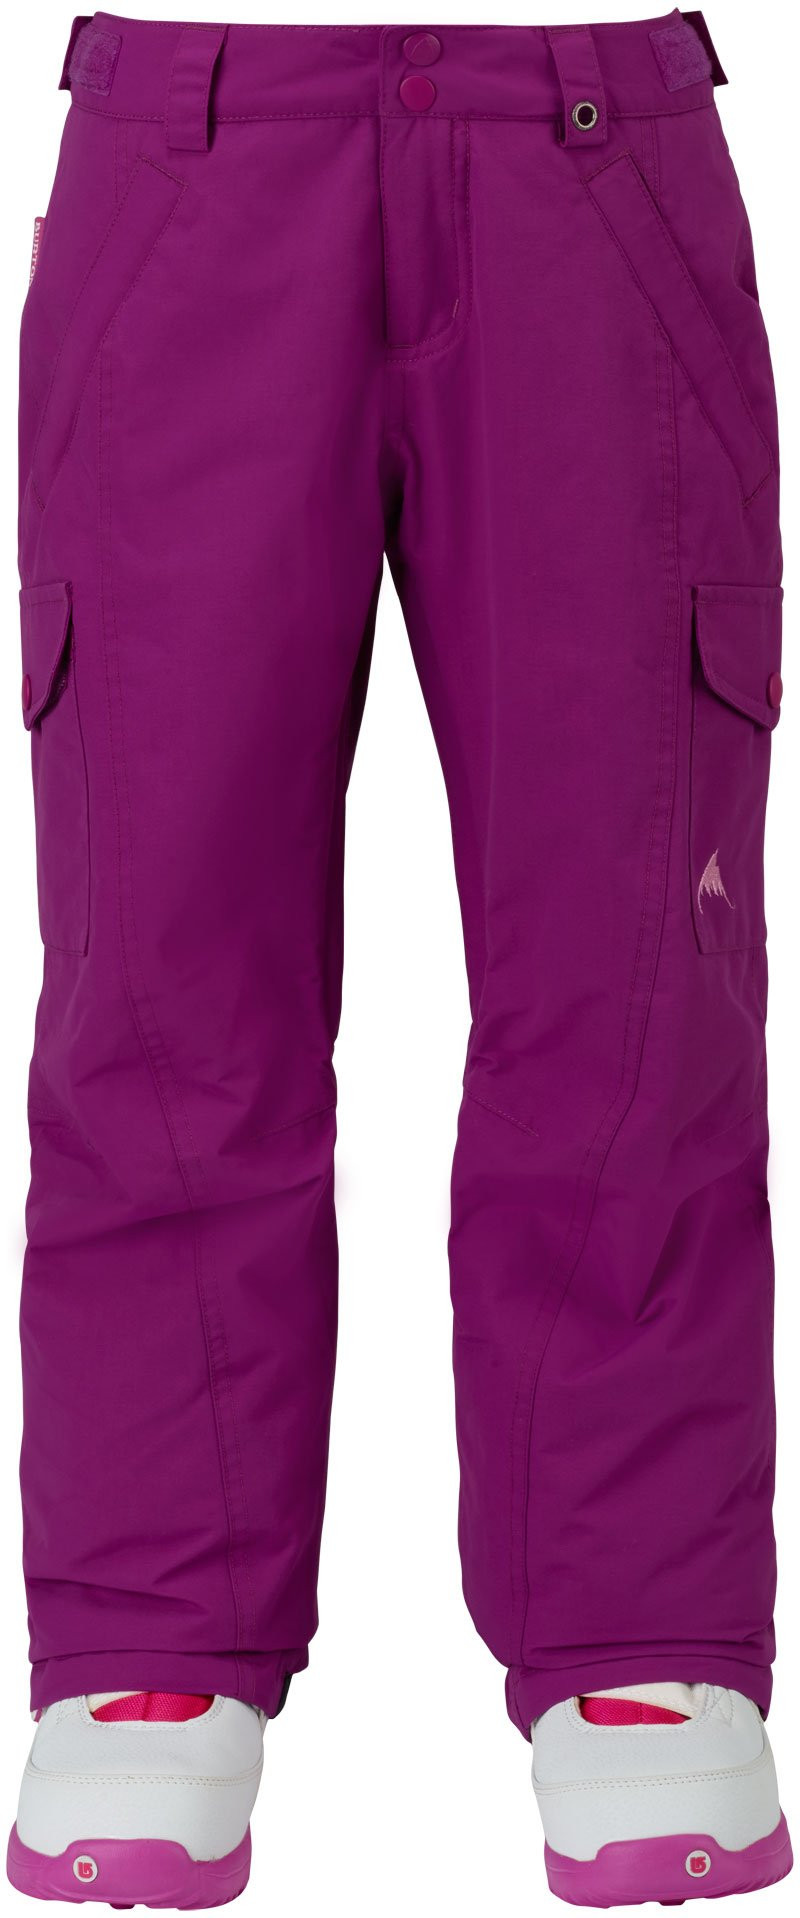 BURTON GIRLS ELITE CARGO SNOW PANT - PURPLE